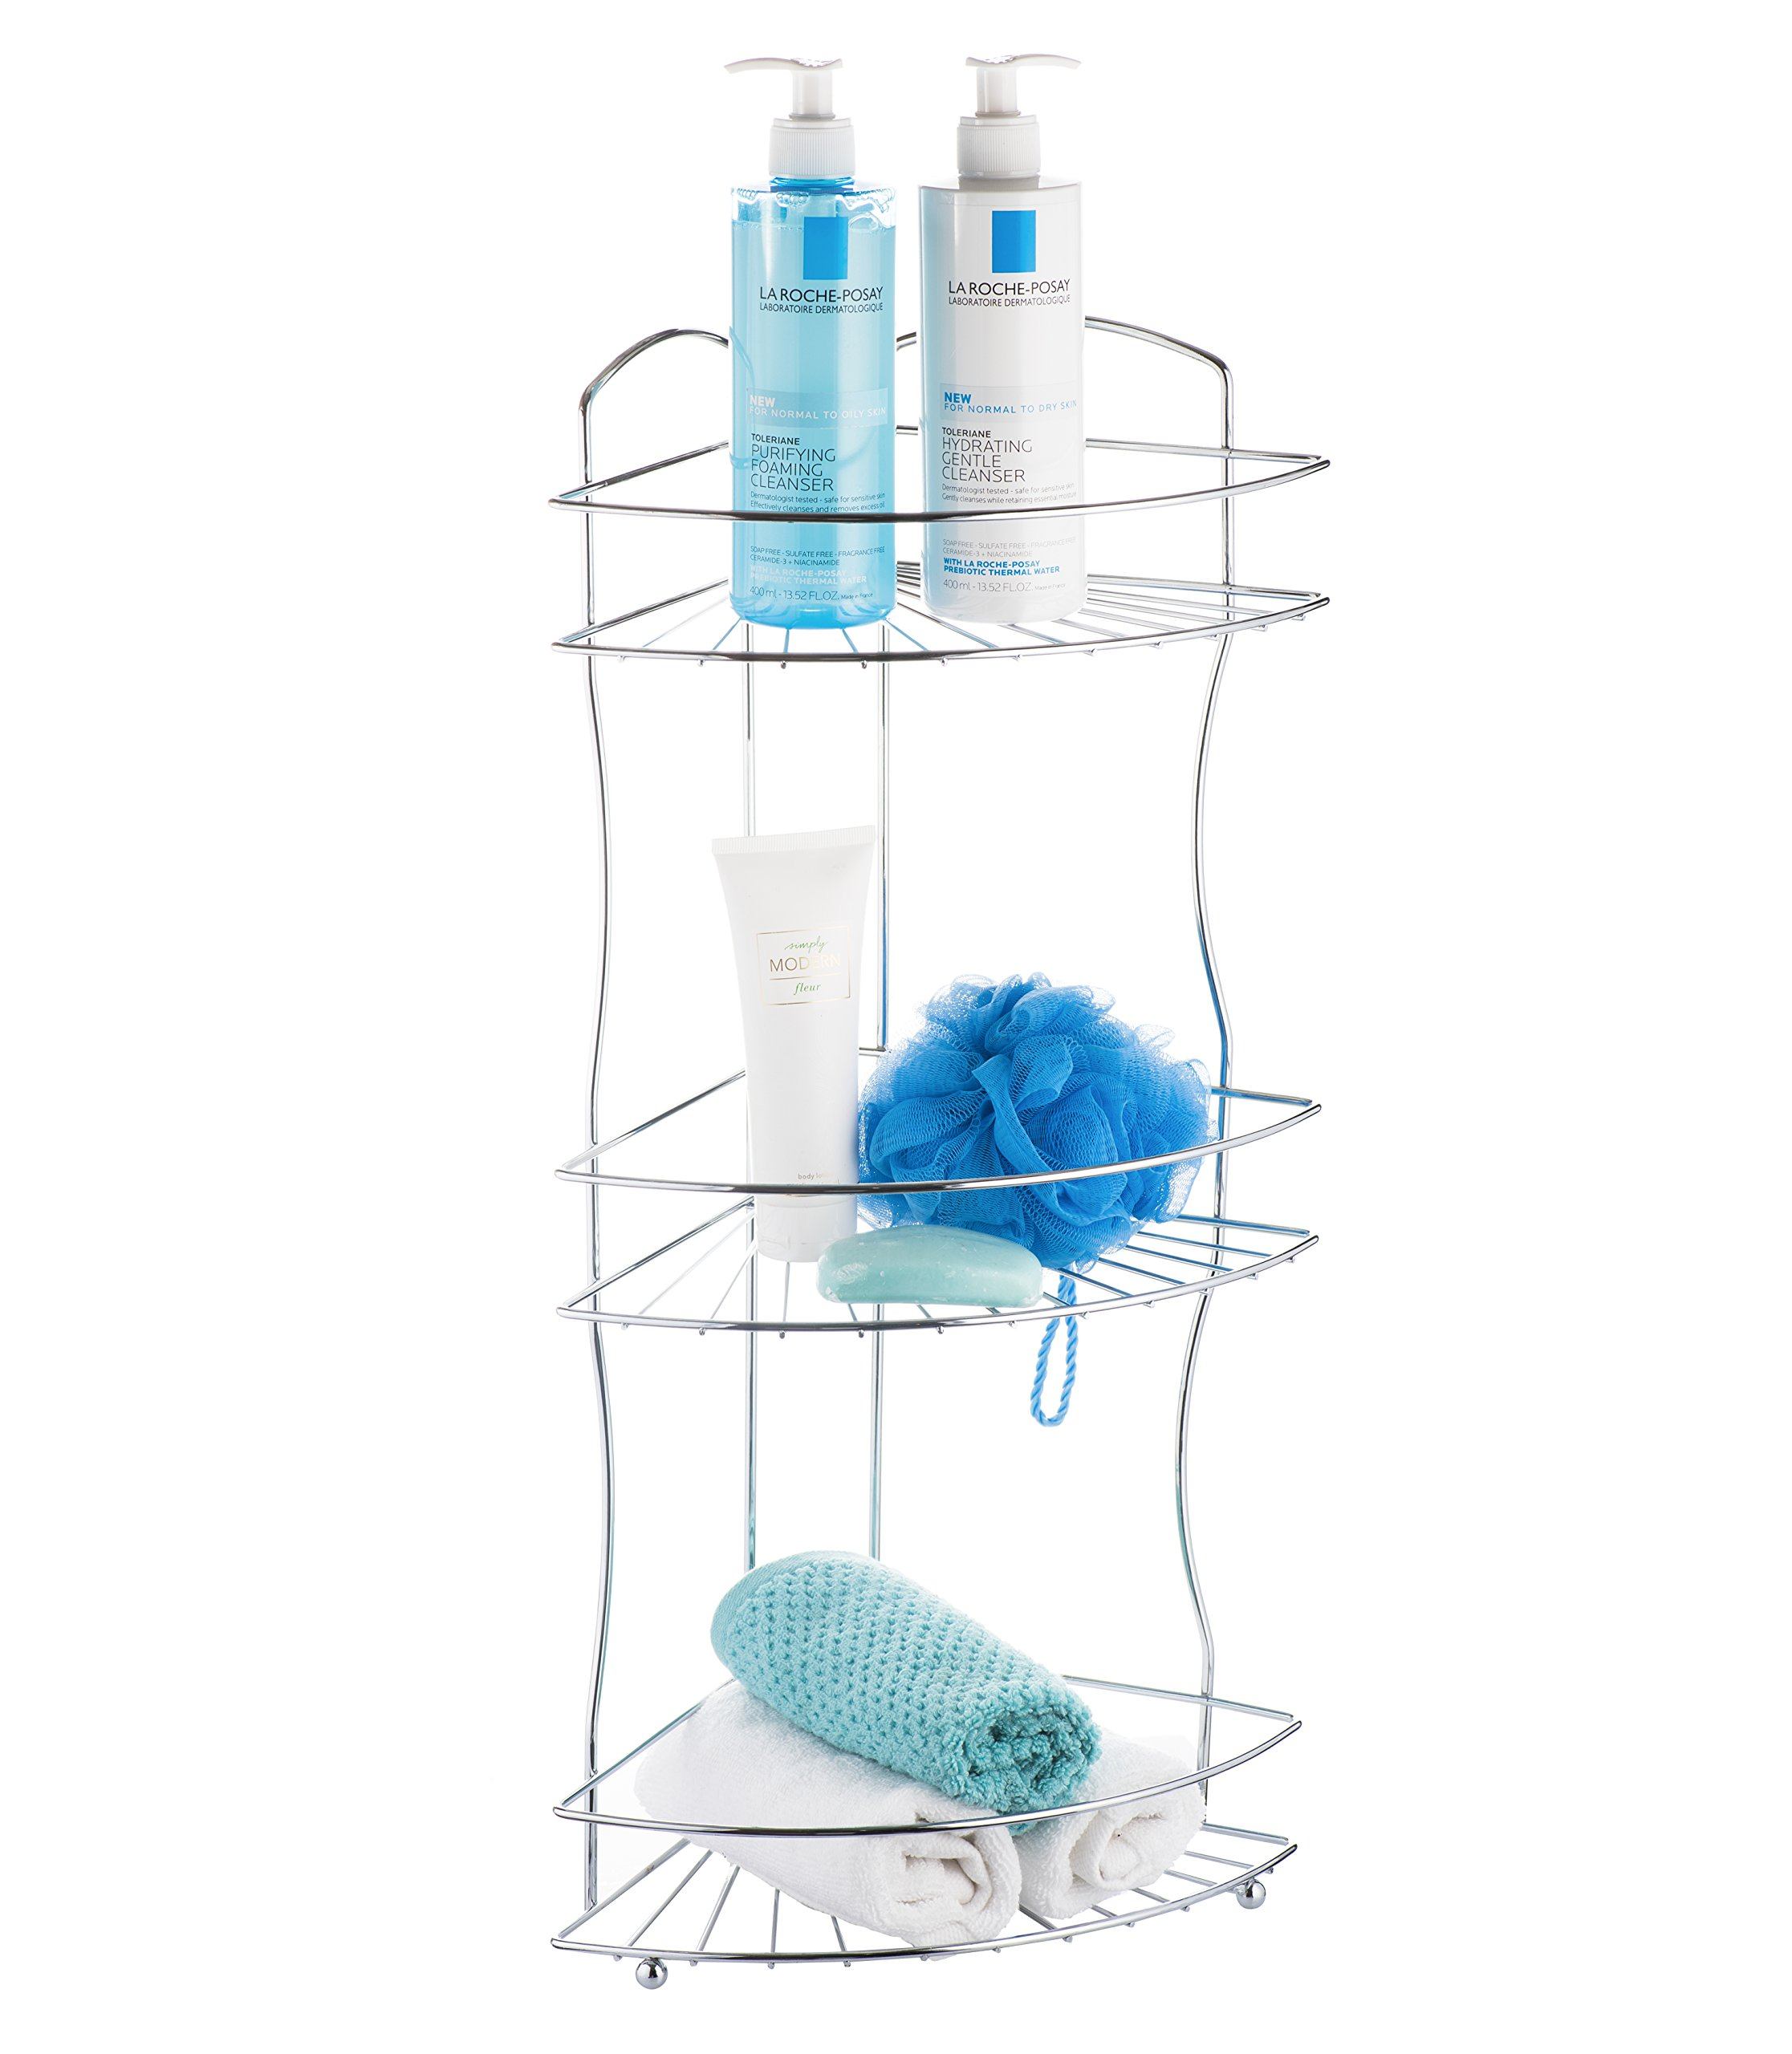 AMG and Enchante Accessories Free Standing Bathroom Spa Tower Floor Caddy, FC232-A CHR, Chrome